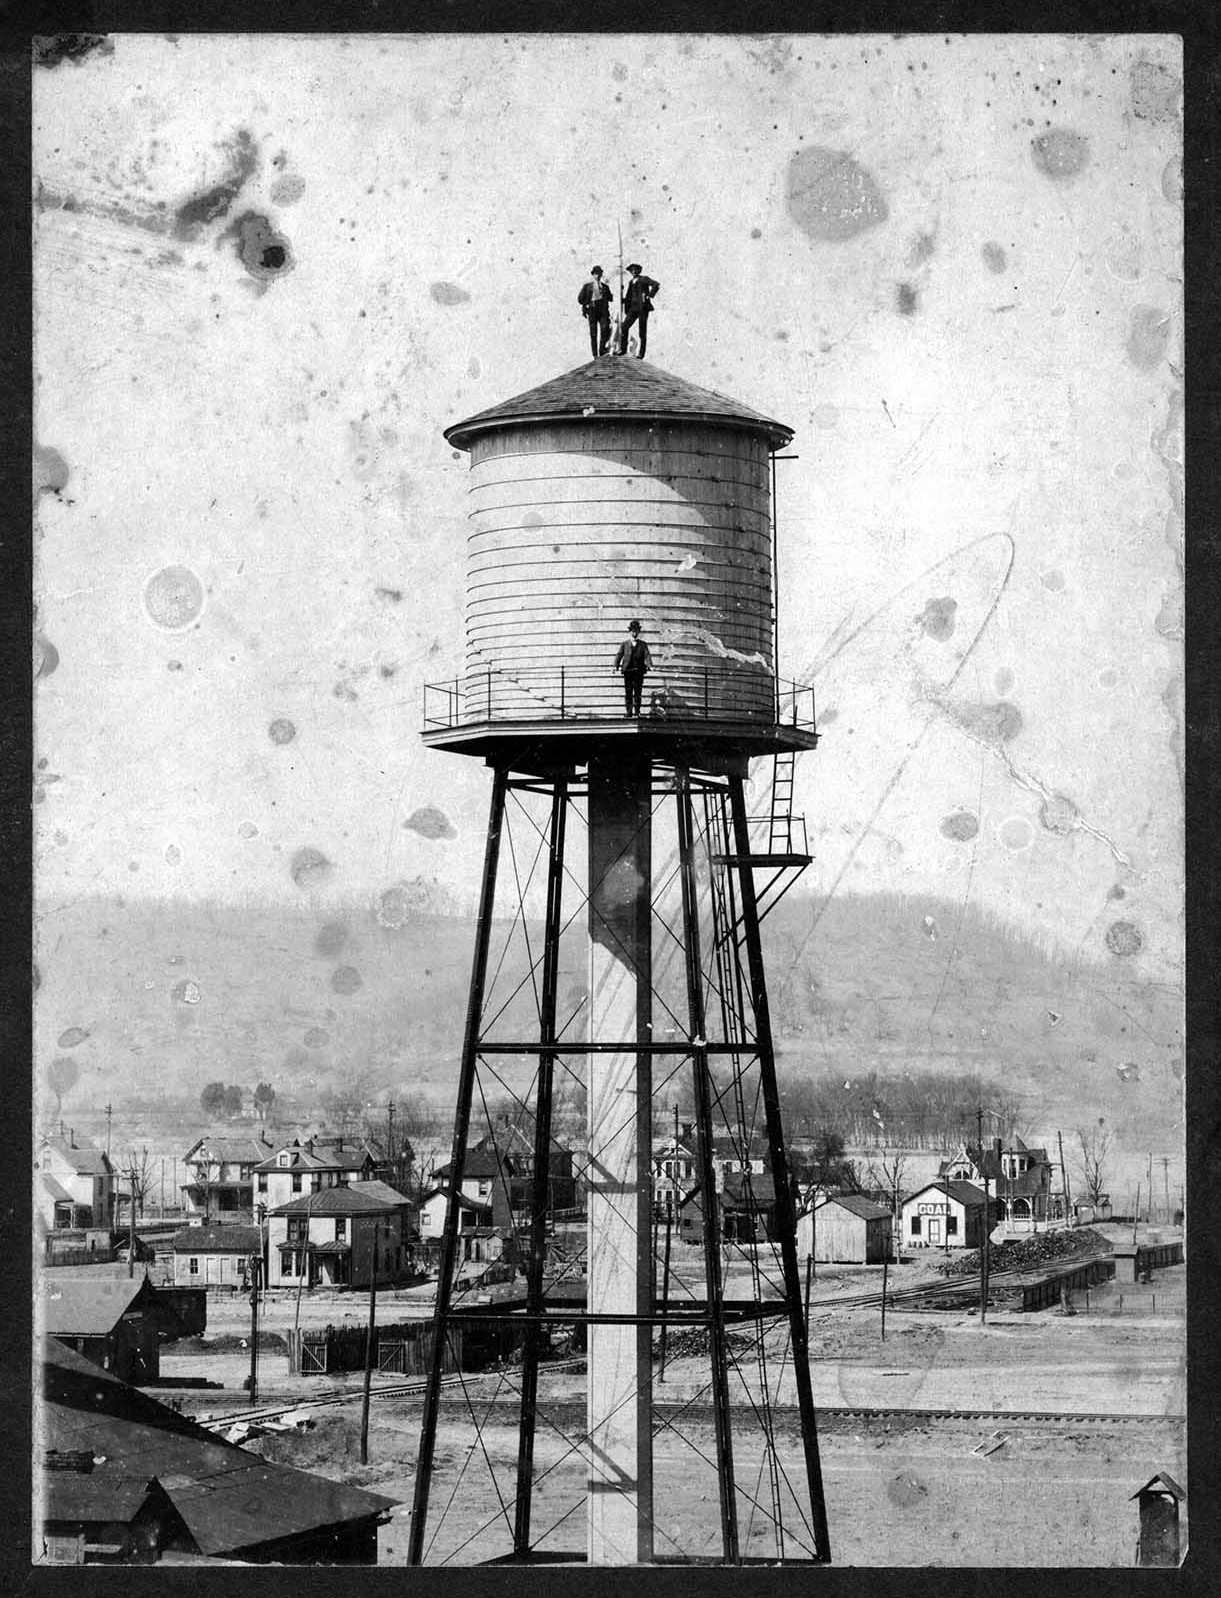 Huntington Tumbler's water tower, seen here in 1905, was the tallest in Central City, making it a local landmark for years. Image courtesy of Marshall University Special Collections.